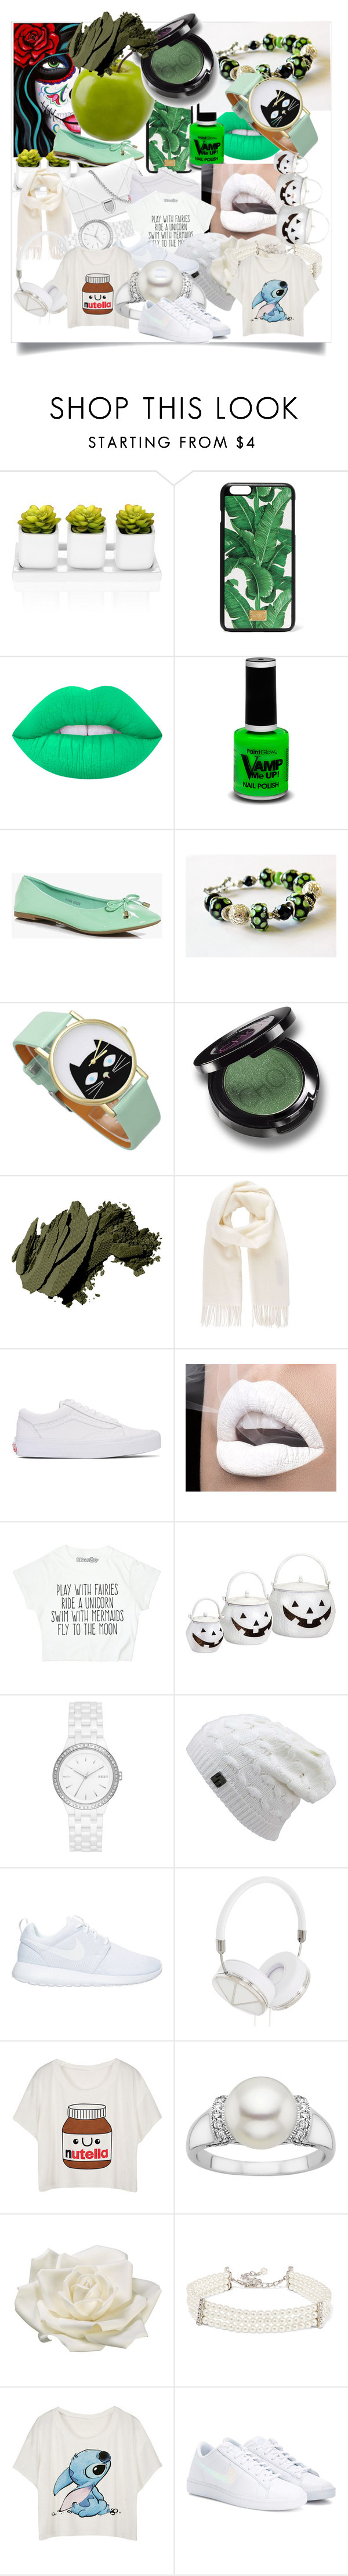 """""""Green and white"""" by simonyulya ❤ liked on Polyvore featuring beauty, Dolce&Gabbana, Lime Crime, PaintGlow, Boohoo, Bobbi Brown Cosmetics, Vivienne Westwood, Vans, DKNY and NIKE"""